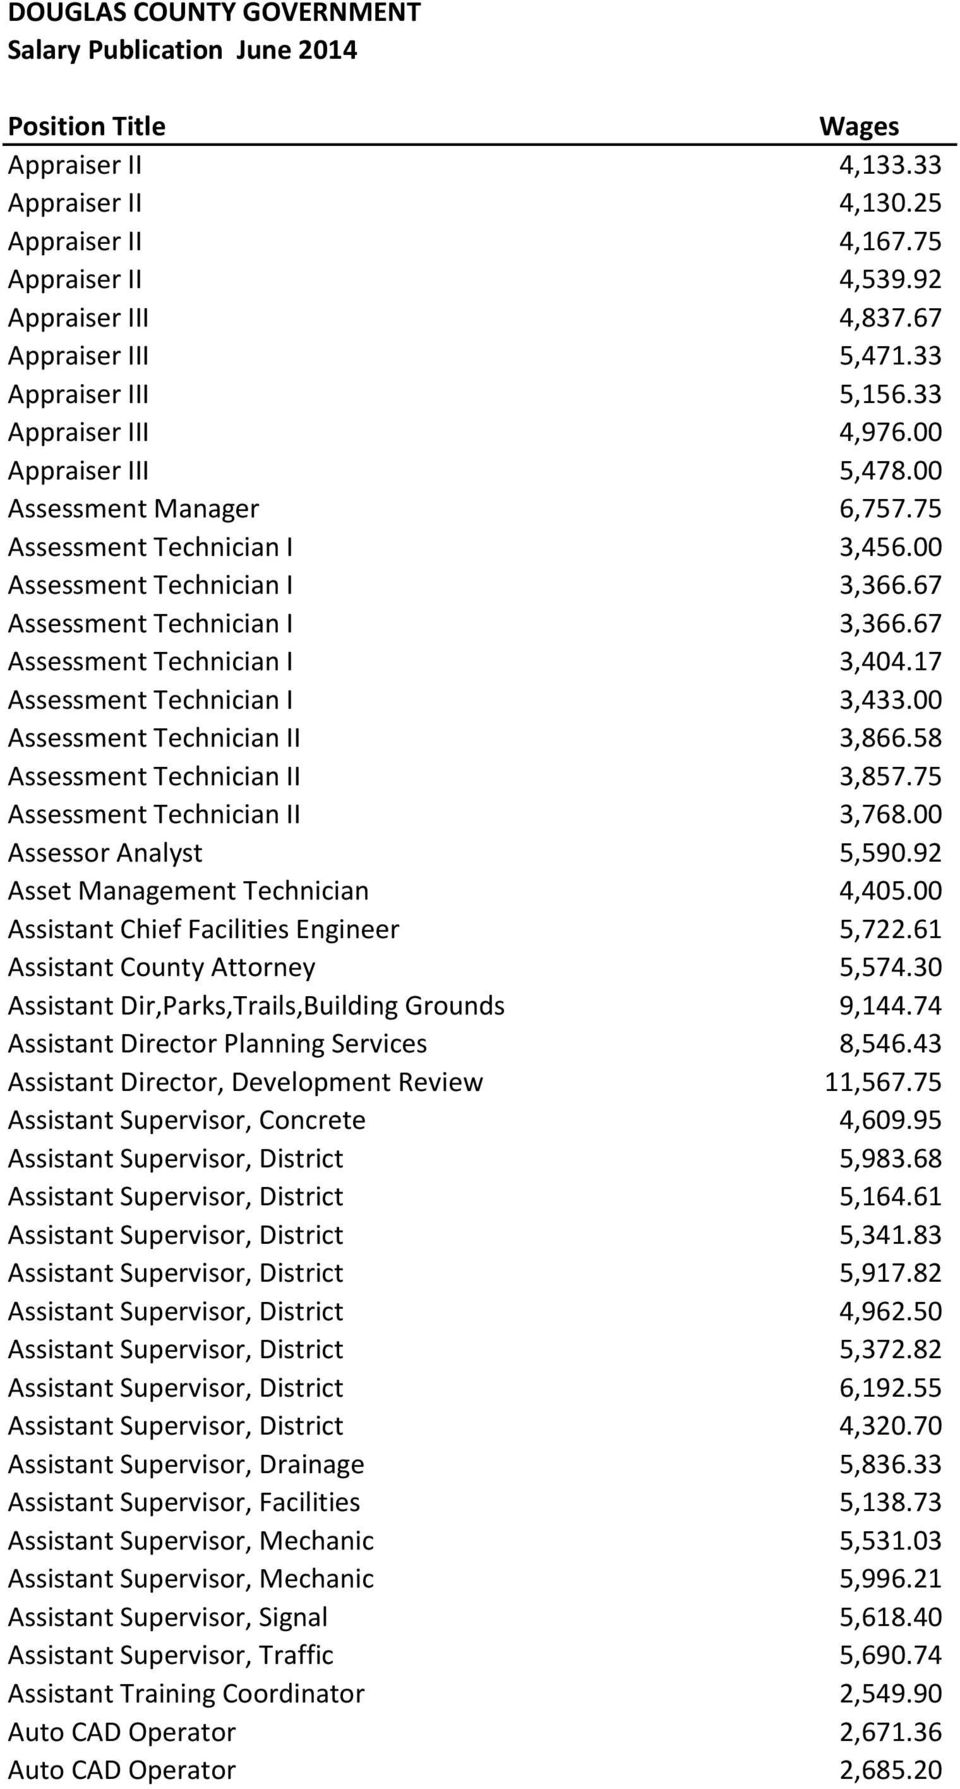 00 Assessment Technician II 3,866.58 Assessment Technician II 3,857.75 Assessment Technician II 3,768.00 Assessor Analyst 5,590.92 Asset Management Technician 4,405.